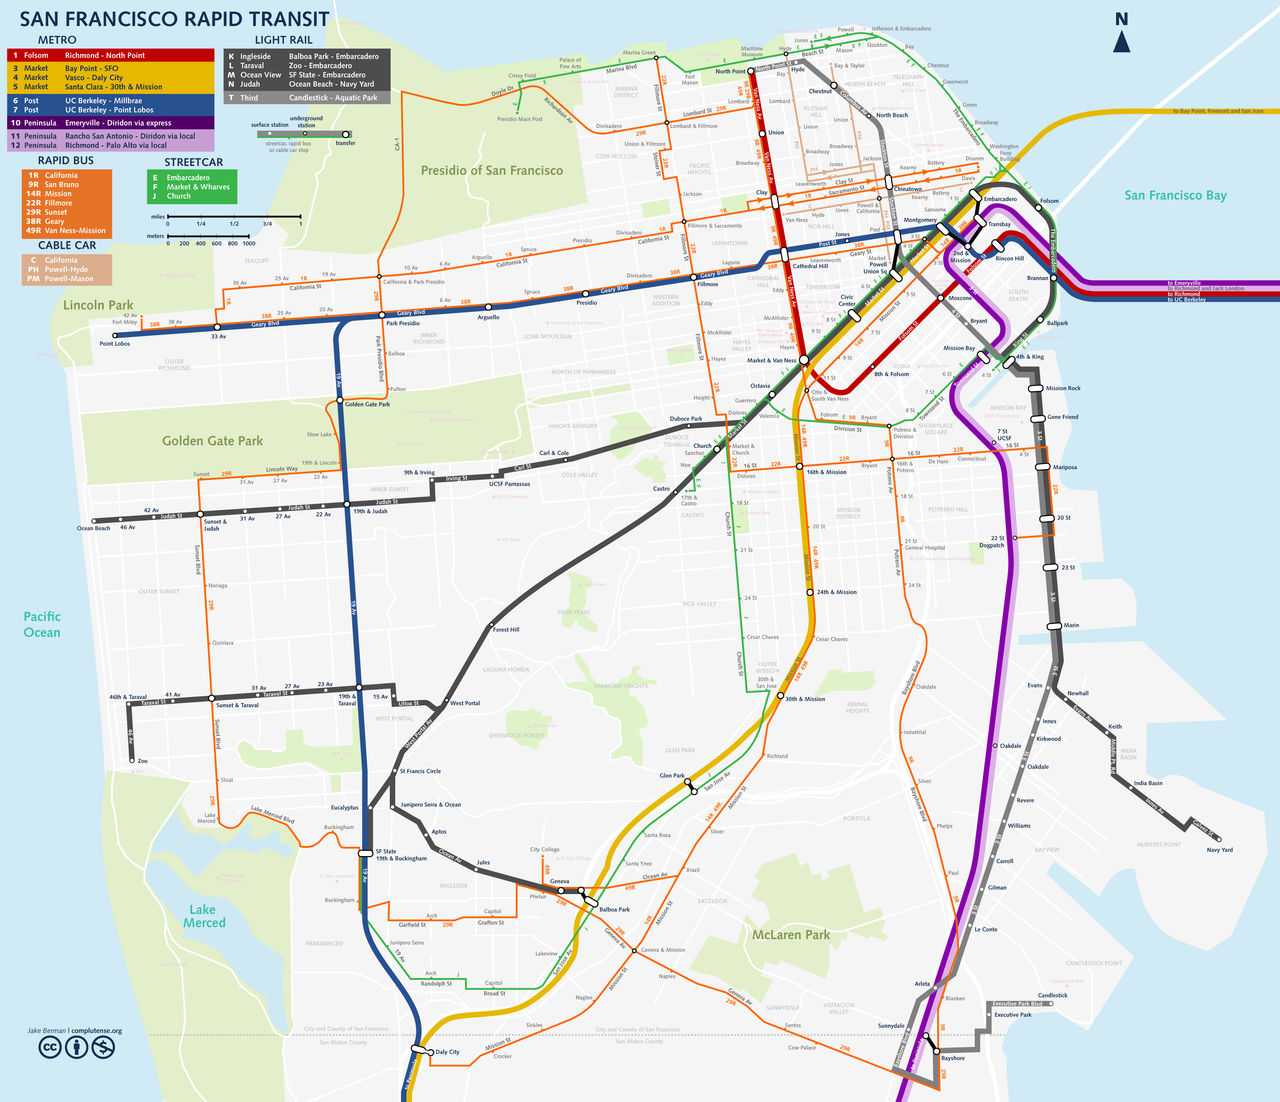 San Francisco streetcar map by qweqwe321 on DeviantArt on new orleans streetcar map, redwood city streetcar map, columbus streetcar map, little rock streetcar map, edinburgh streetcar map, san francisco trolley lines, muni streetcar map, san francisco f. line route, san francisco muni trolley bus, missouri kansas city streetcar map, cable car map, san francisco street cars 1800s, muni bus map, ybor city streetcar map, savannah streetcar map, norta streetcar map, san francisco muni routes, montreal streetcar map, san francisco muni transit, salt lake city streetcar map,